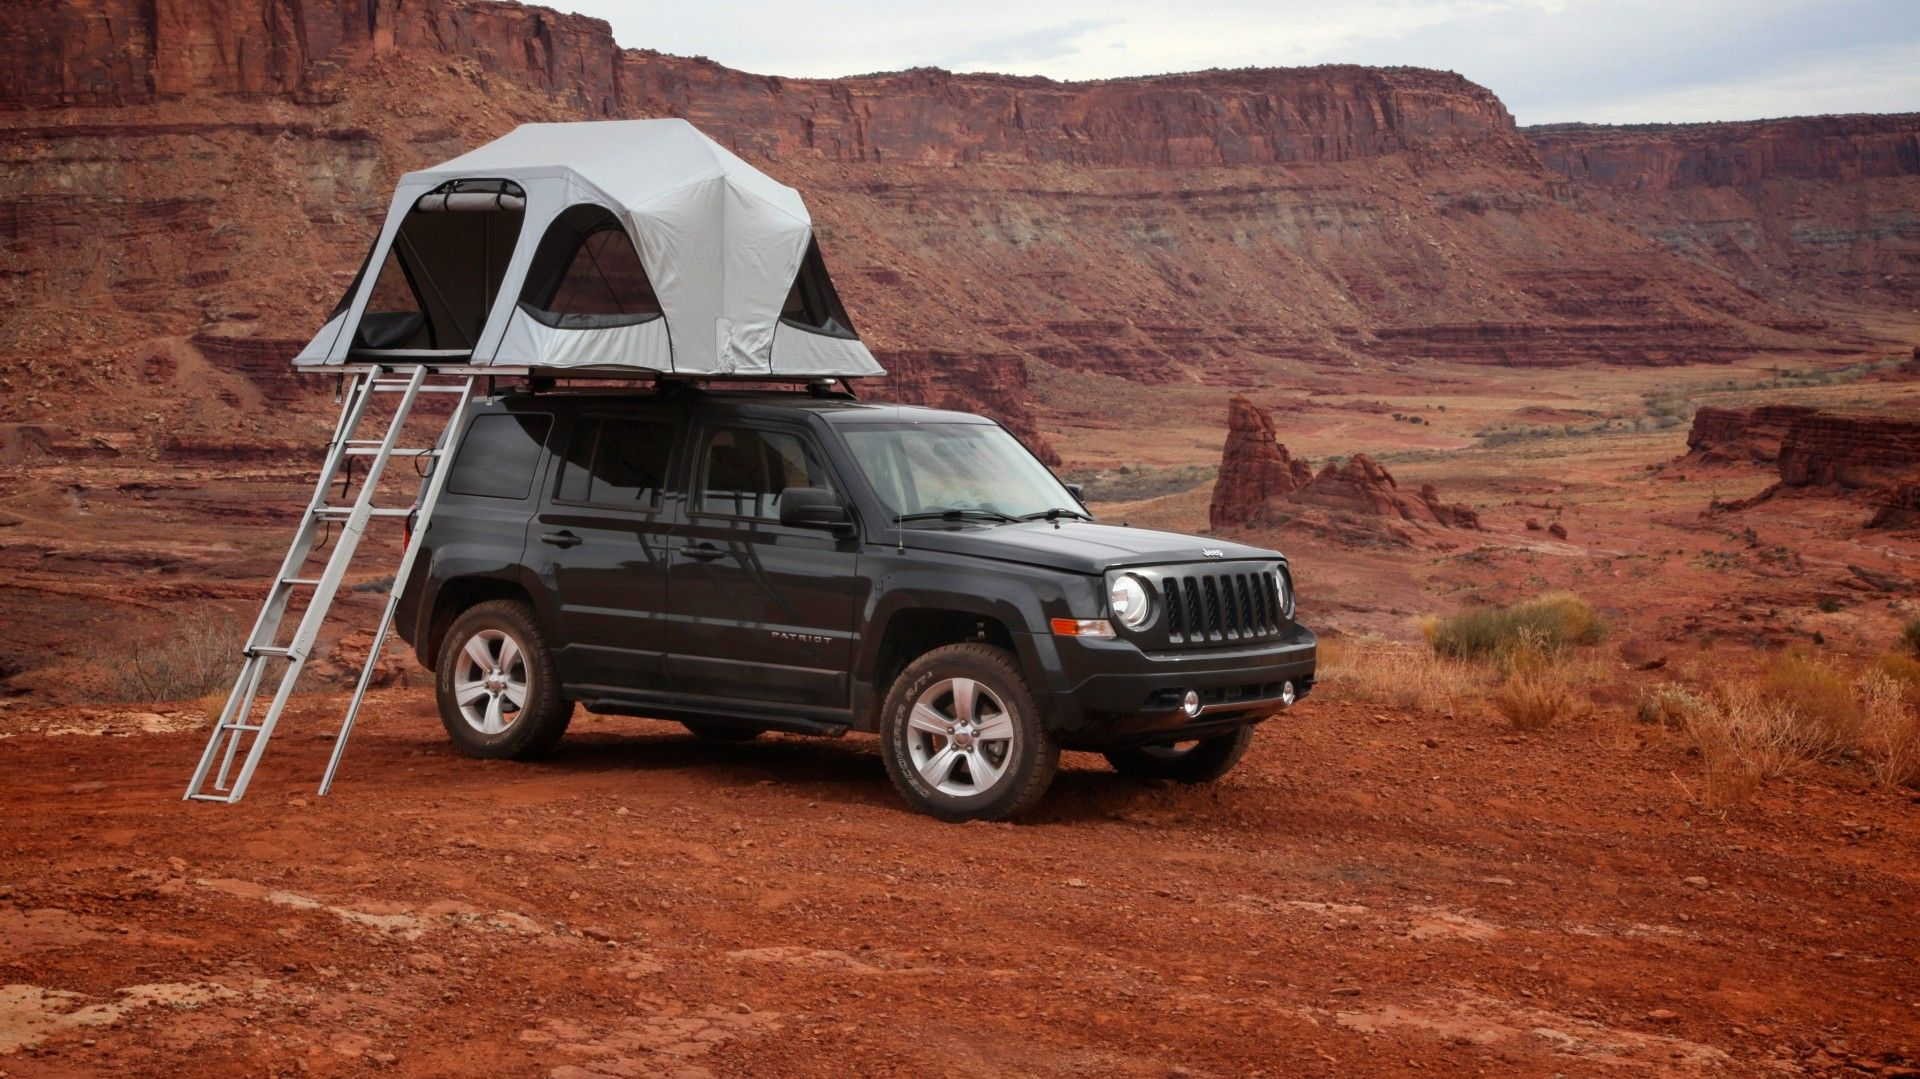 Roof top tent · New vision by James Baroud & New vision by James Baroud   camping   Pinterest   Roof top tent